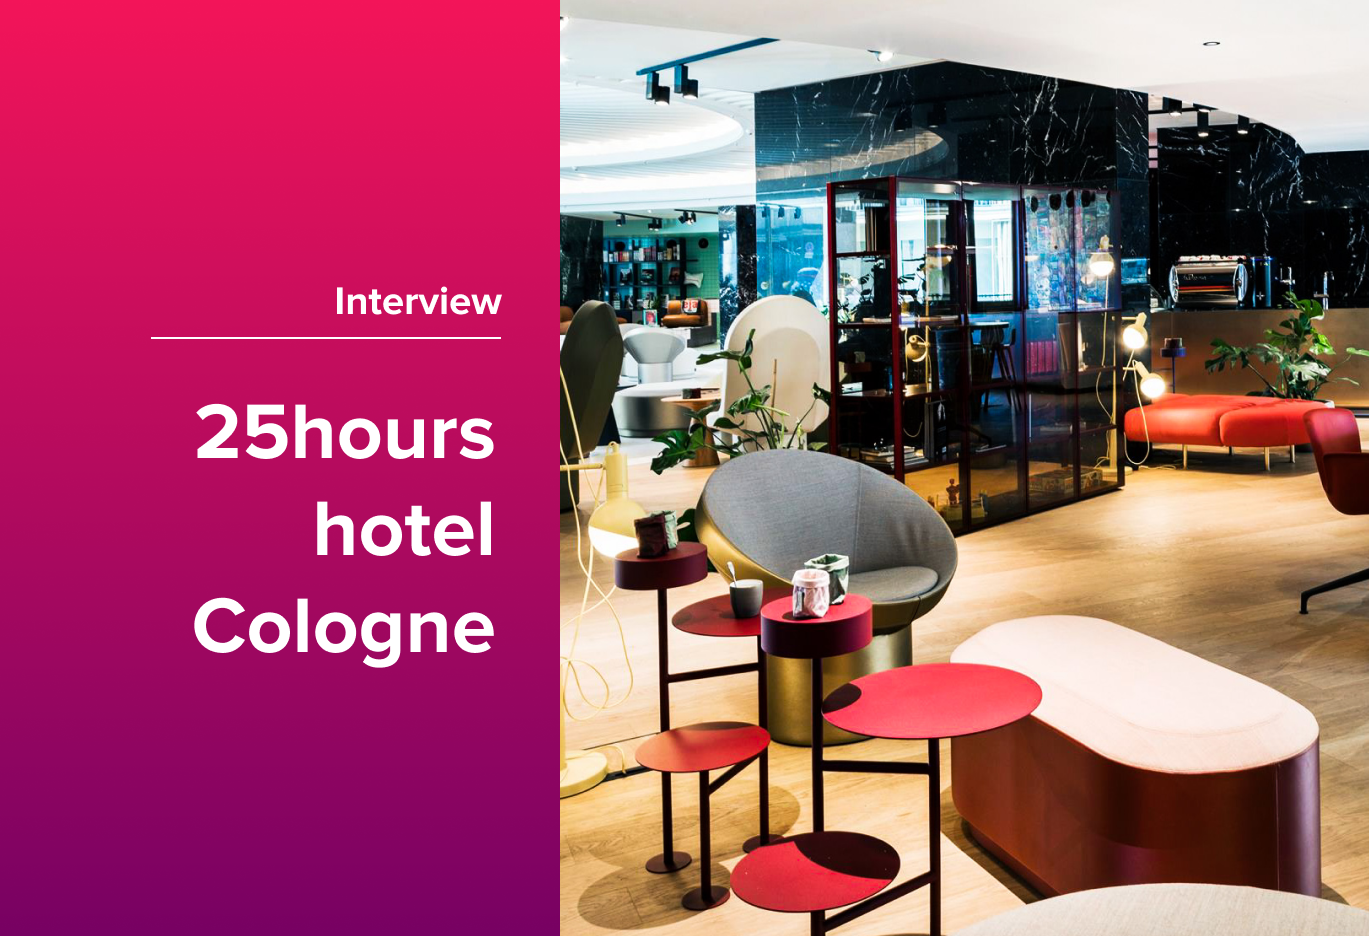 deskbird Coworking Spaces: Hello 25hours Hotel Cologne